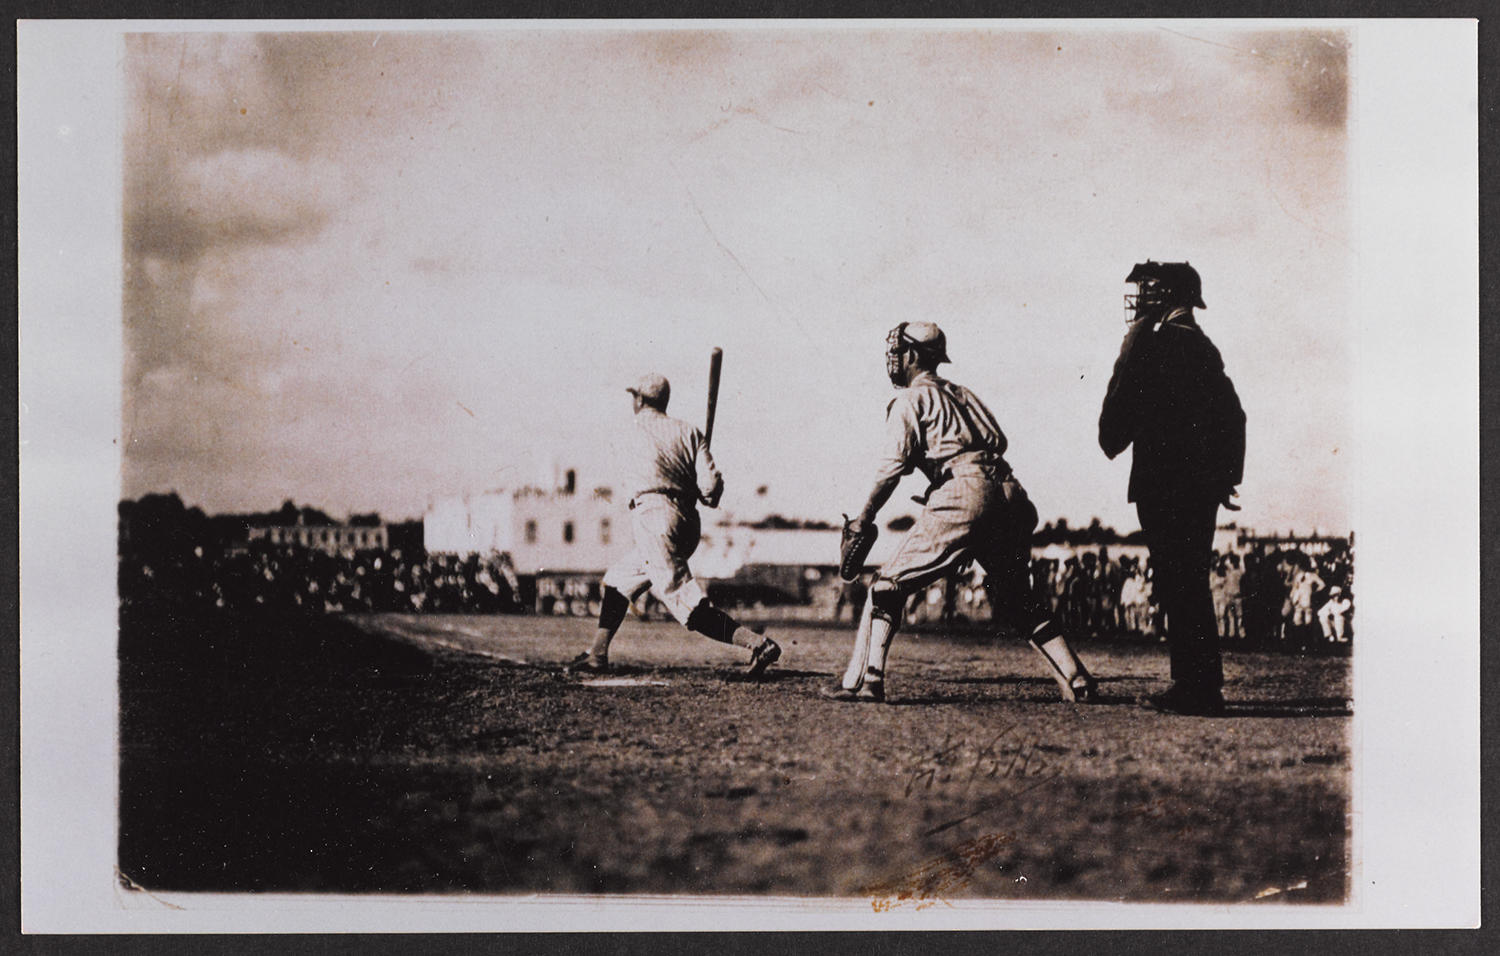 """Pictured above, Babe Ruth at bat in Almendares Park, when the New York Giants faced off against the Almendares Blues. This image, and more from that game, are available in <a href=""""http://collection.baseballhall.org/islandora/object/islandora%3A214522"""">PASTIME</a>. (National Baseball Hall of Fame)"""